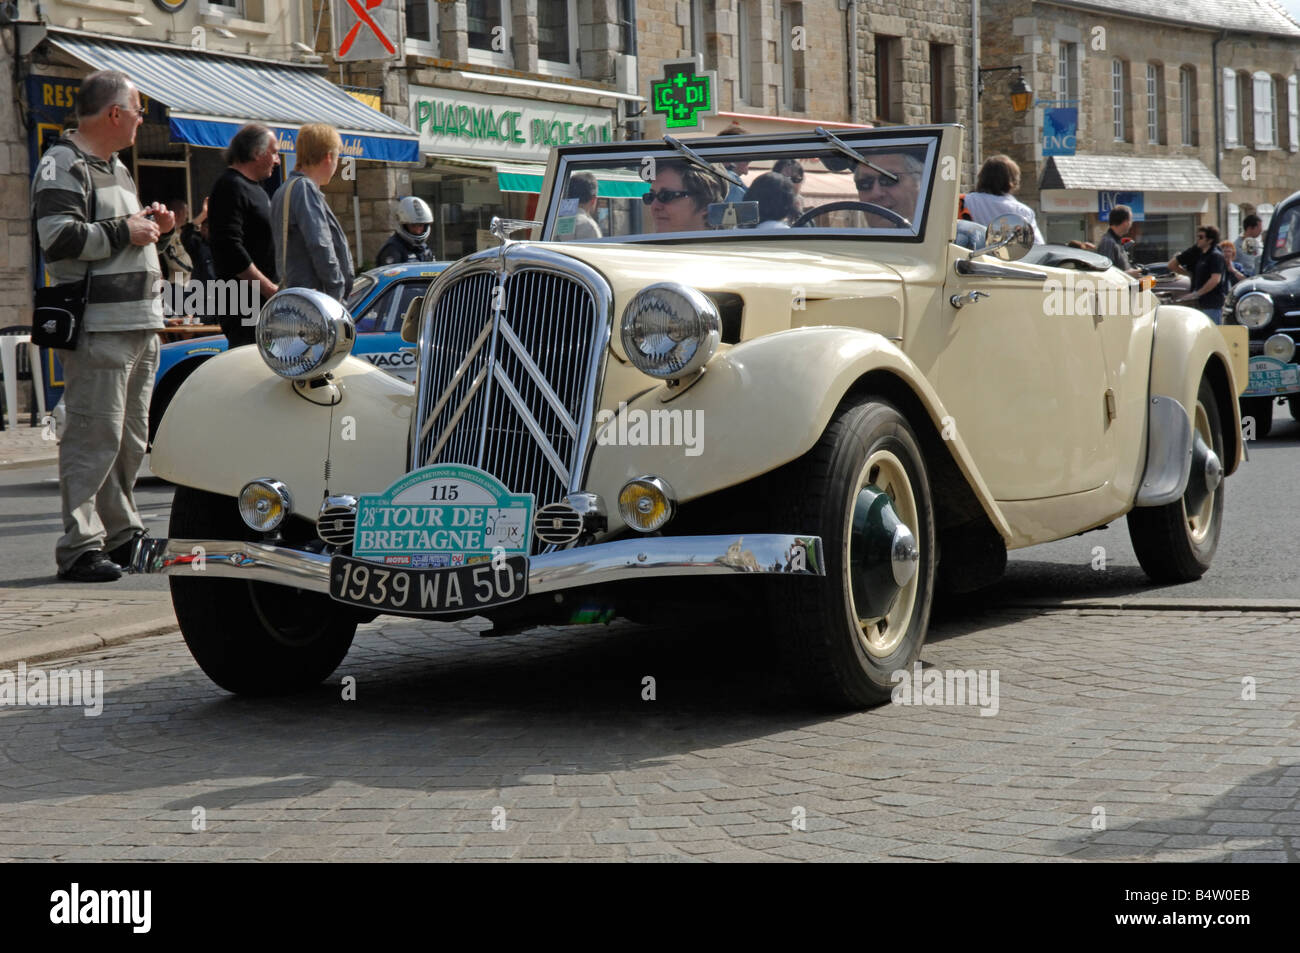 citroen traction 11 bl cabriolet 1939 at broons tour de bretagne stock photo royalty free image. Black Bedroom Furniture Sets. Home Design Ideas